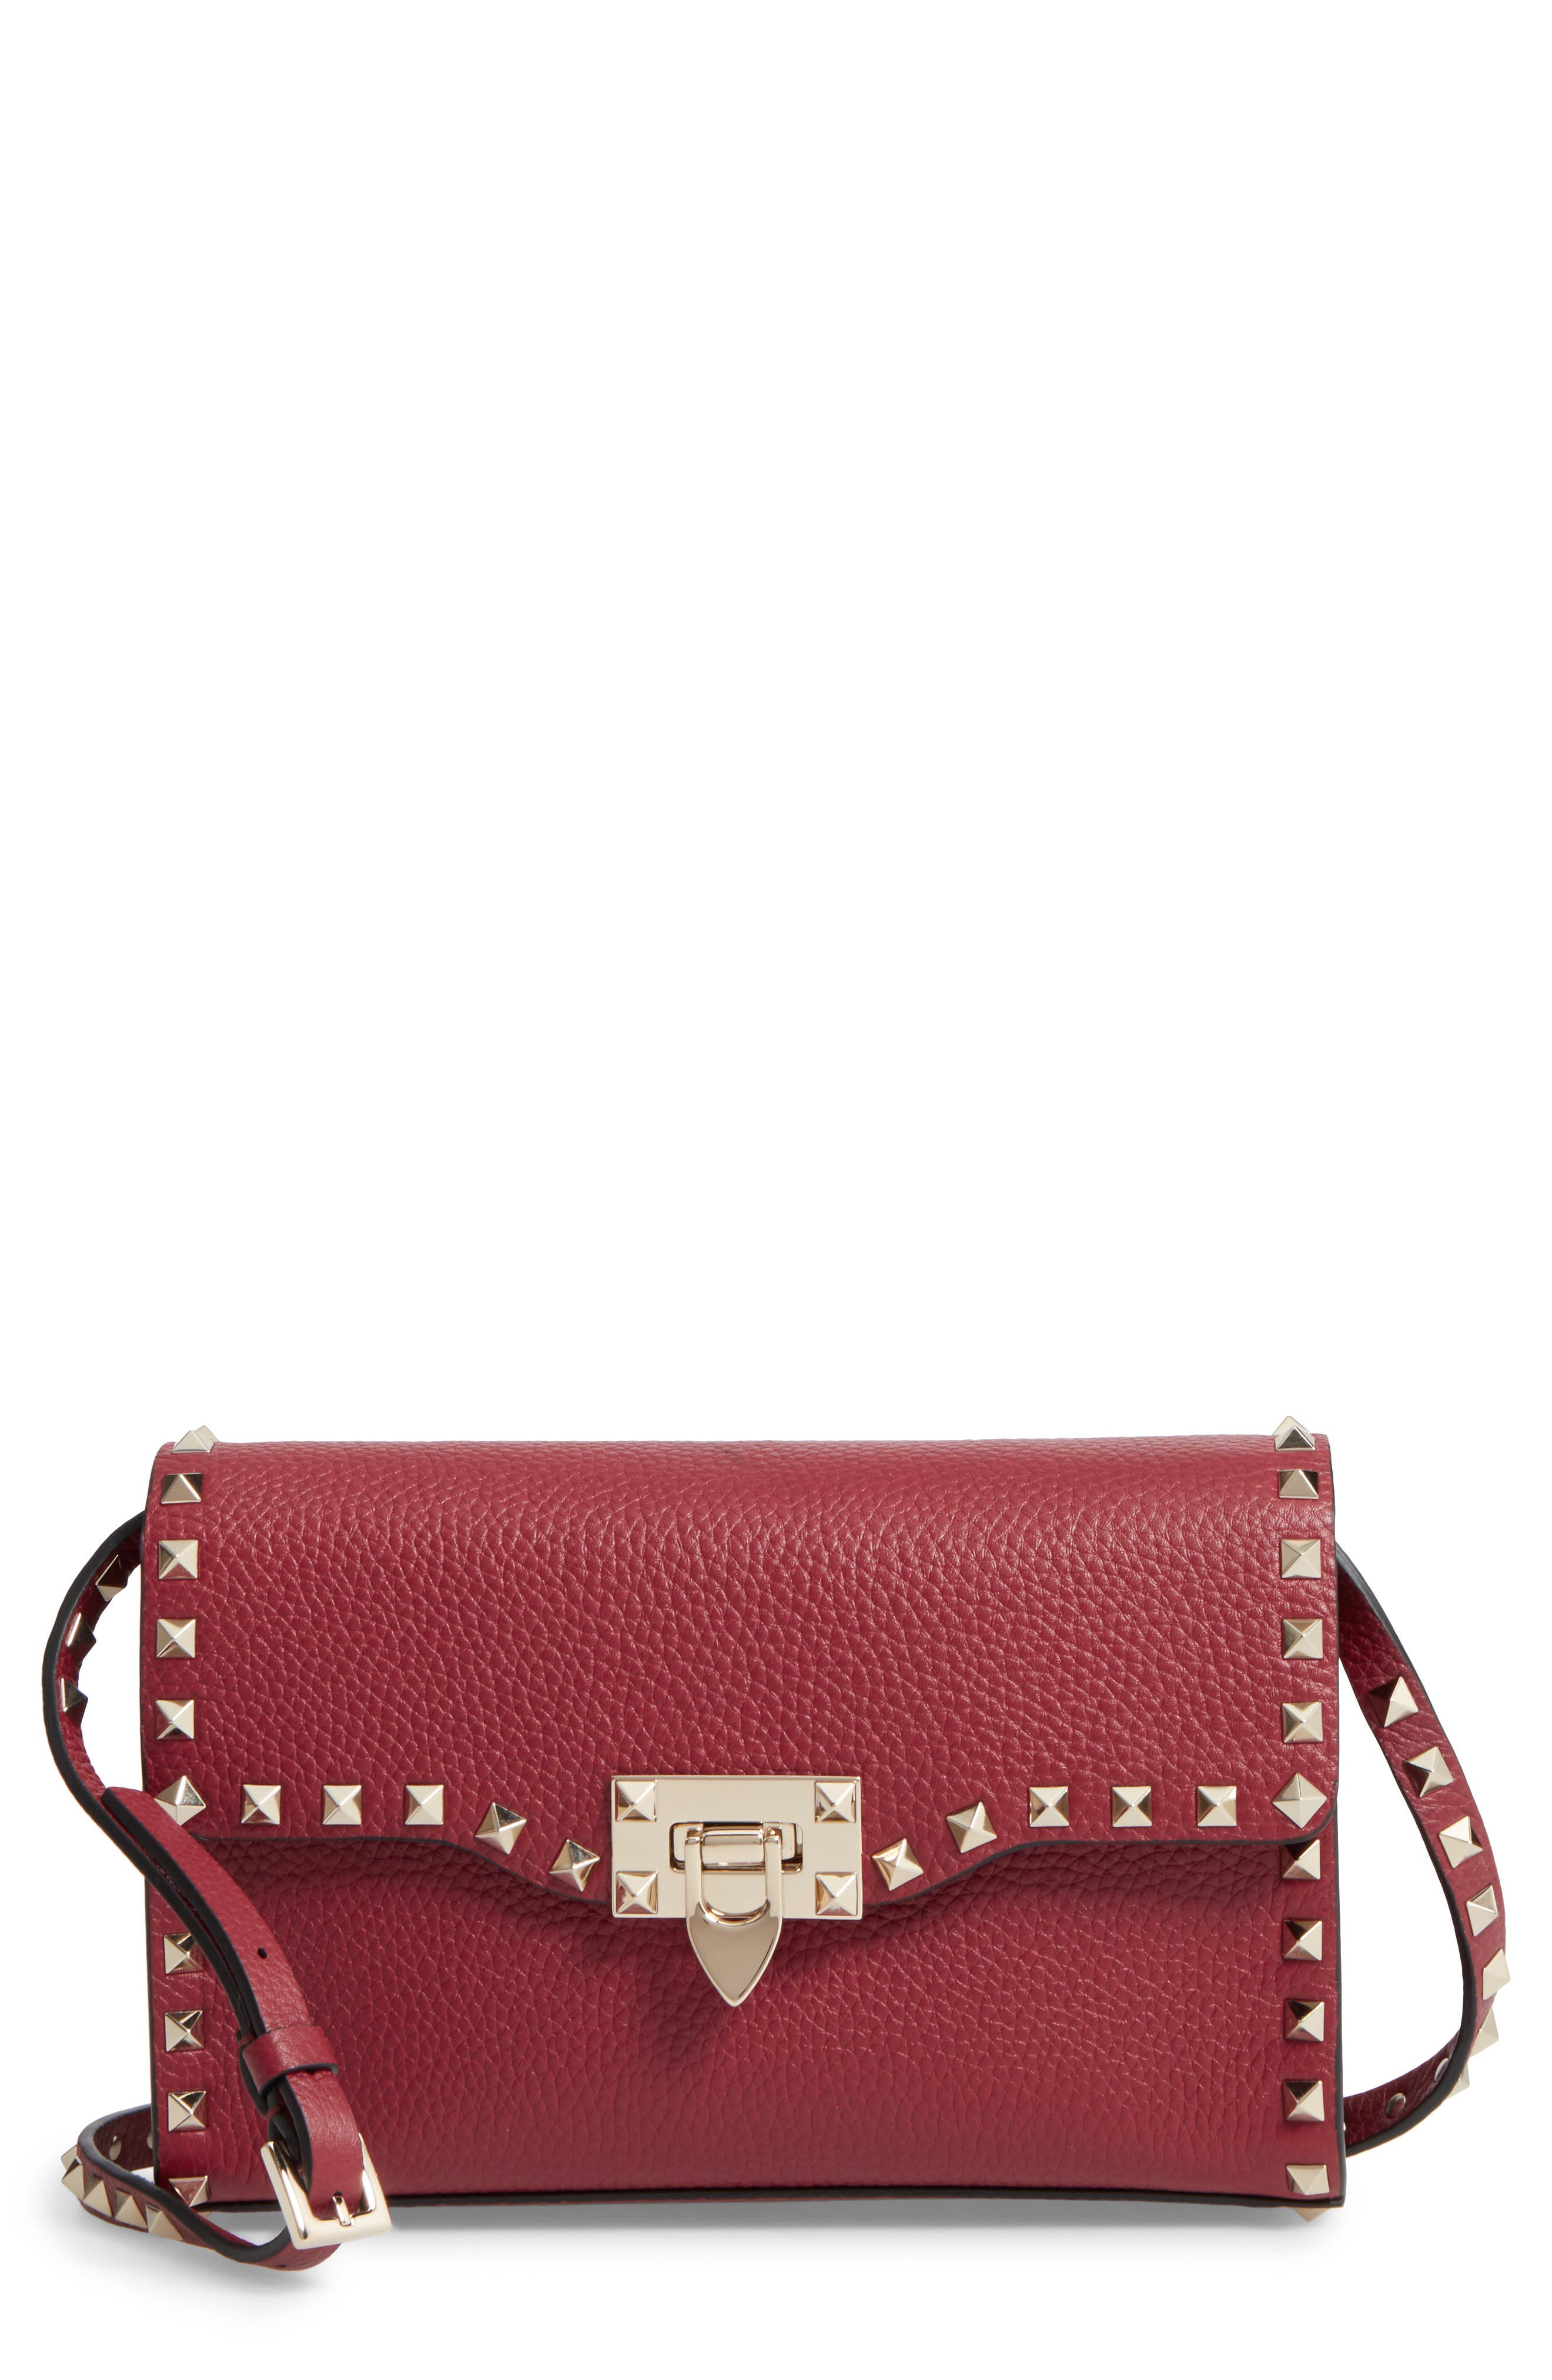 Main Image - VALENTINO GARAVANI Medium Rockstud Leather Messenger Bag